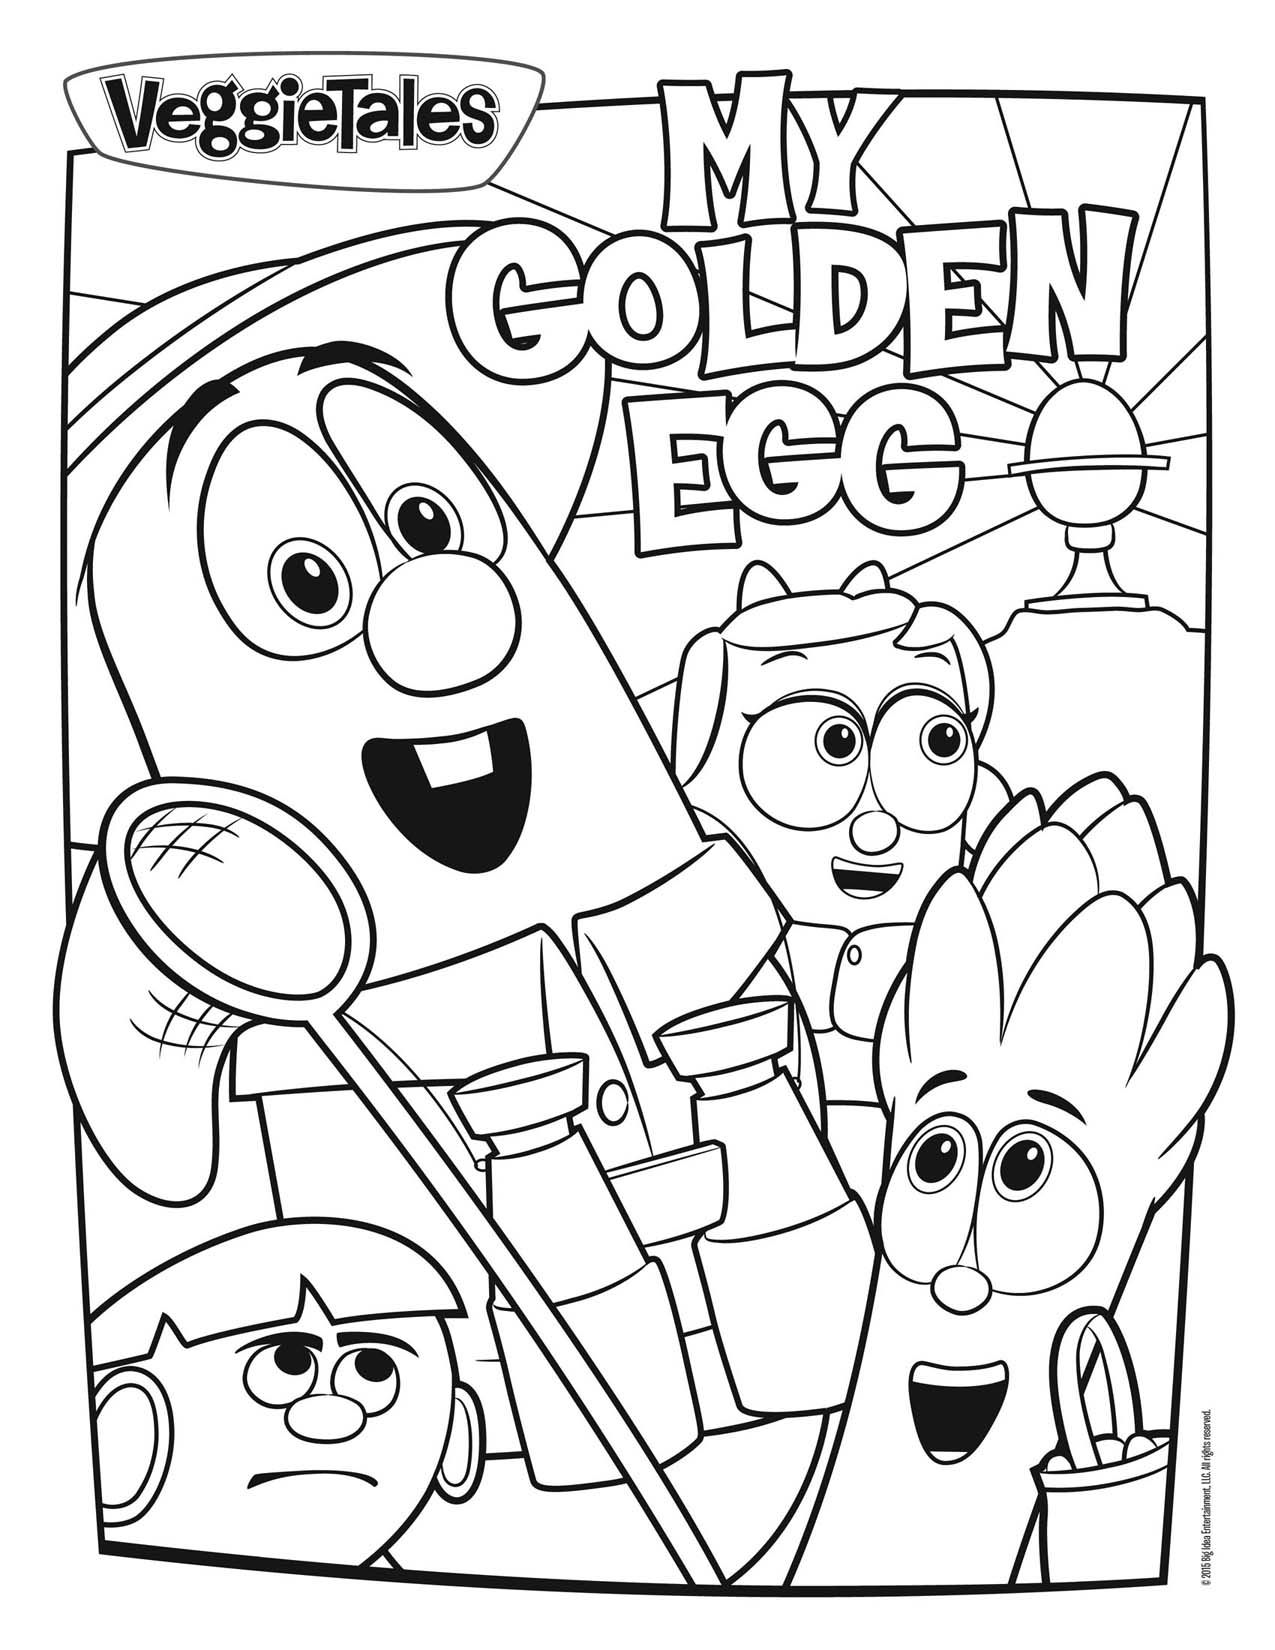 veggie tale christmas coloring pages - photo#26